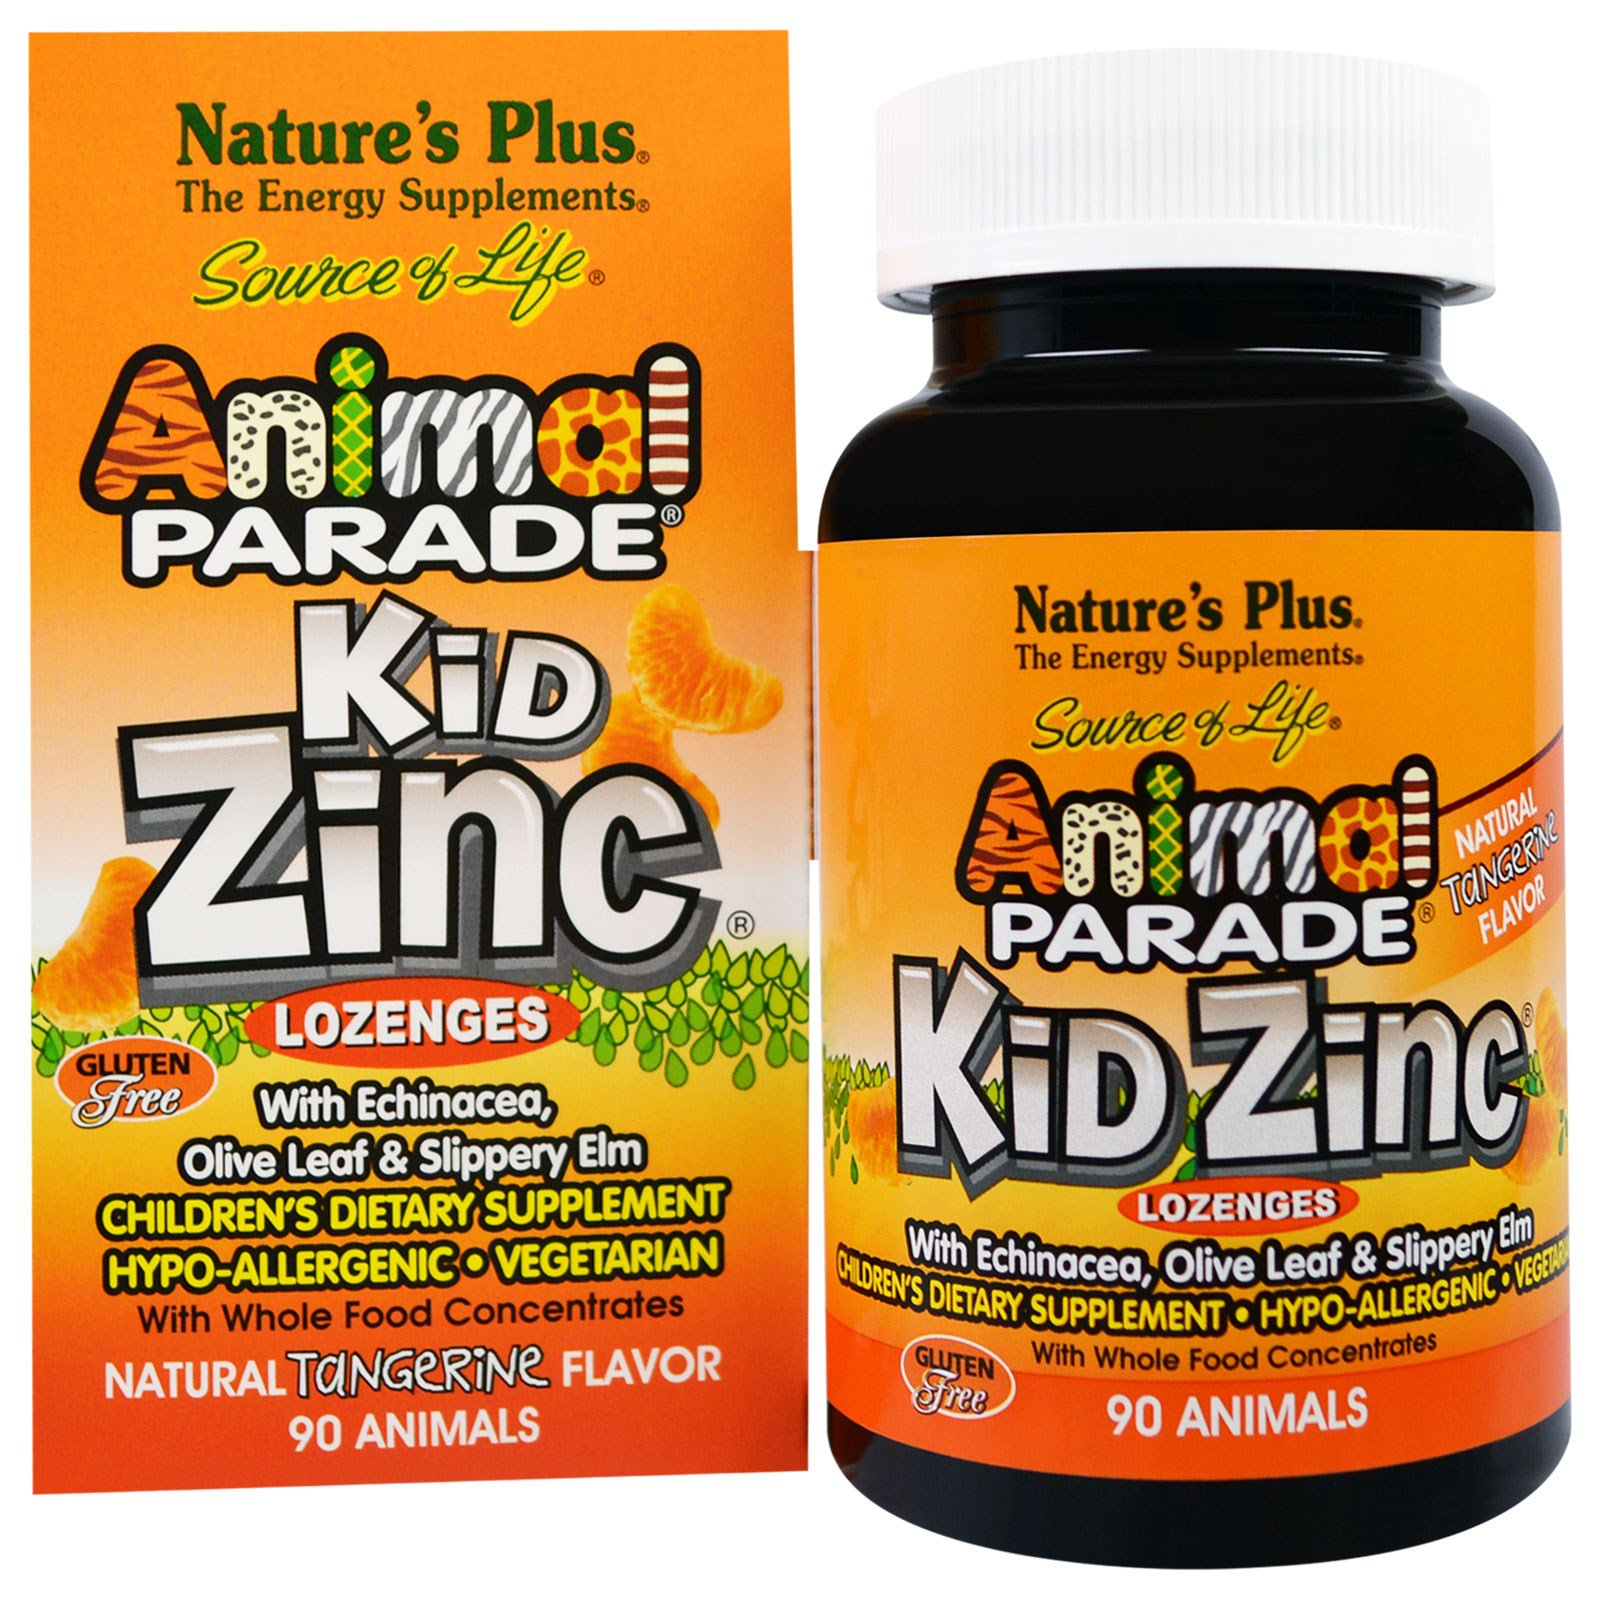 Kid Zinc Lozenges, Natural Tangerine Flavor (90 Animals) Nature apos s Plus